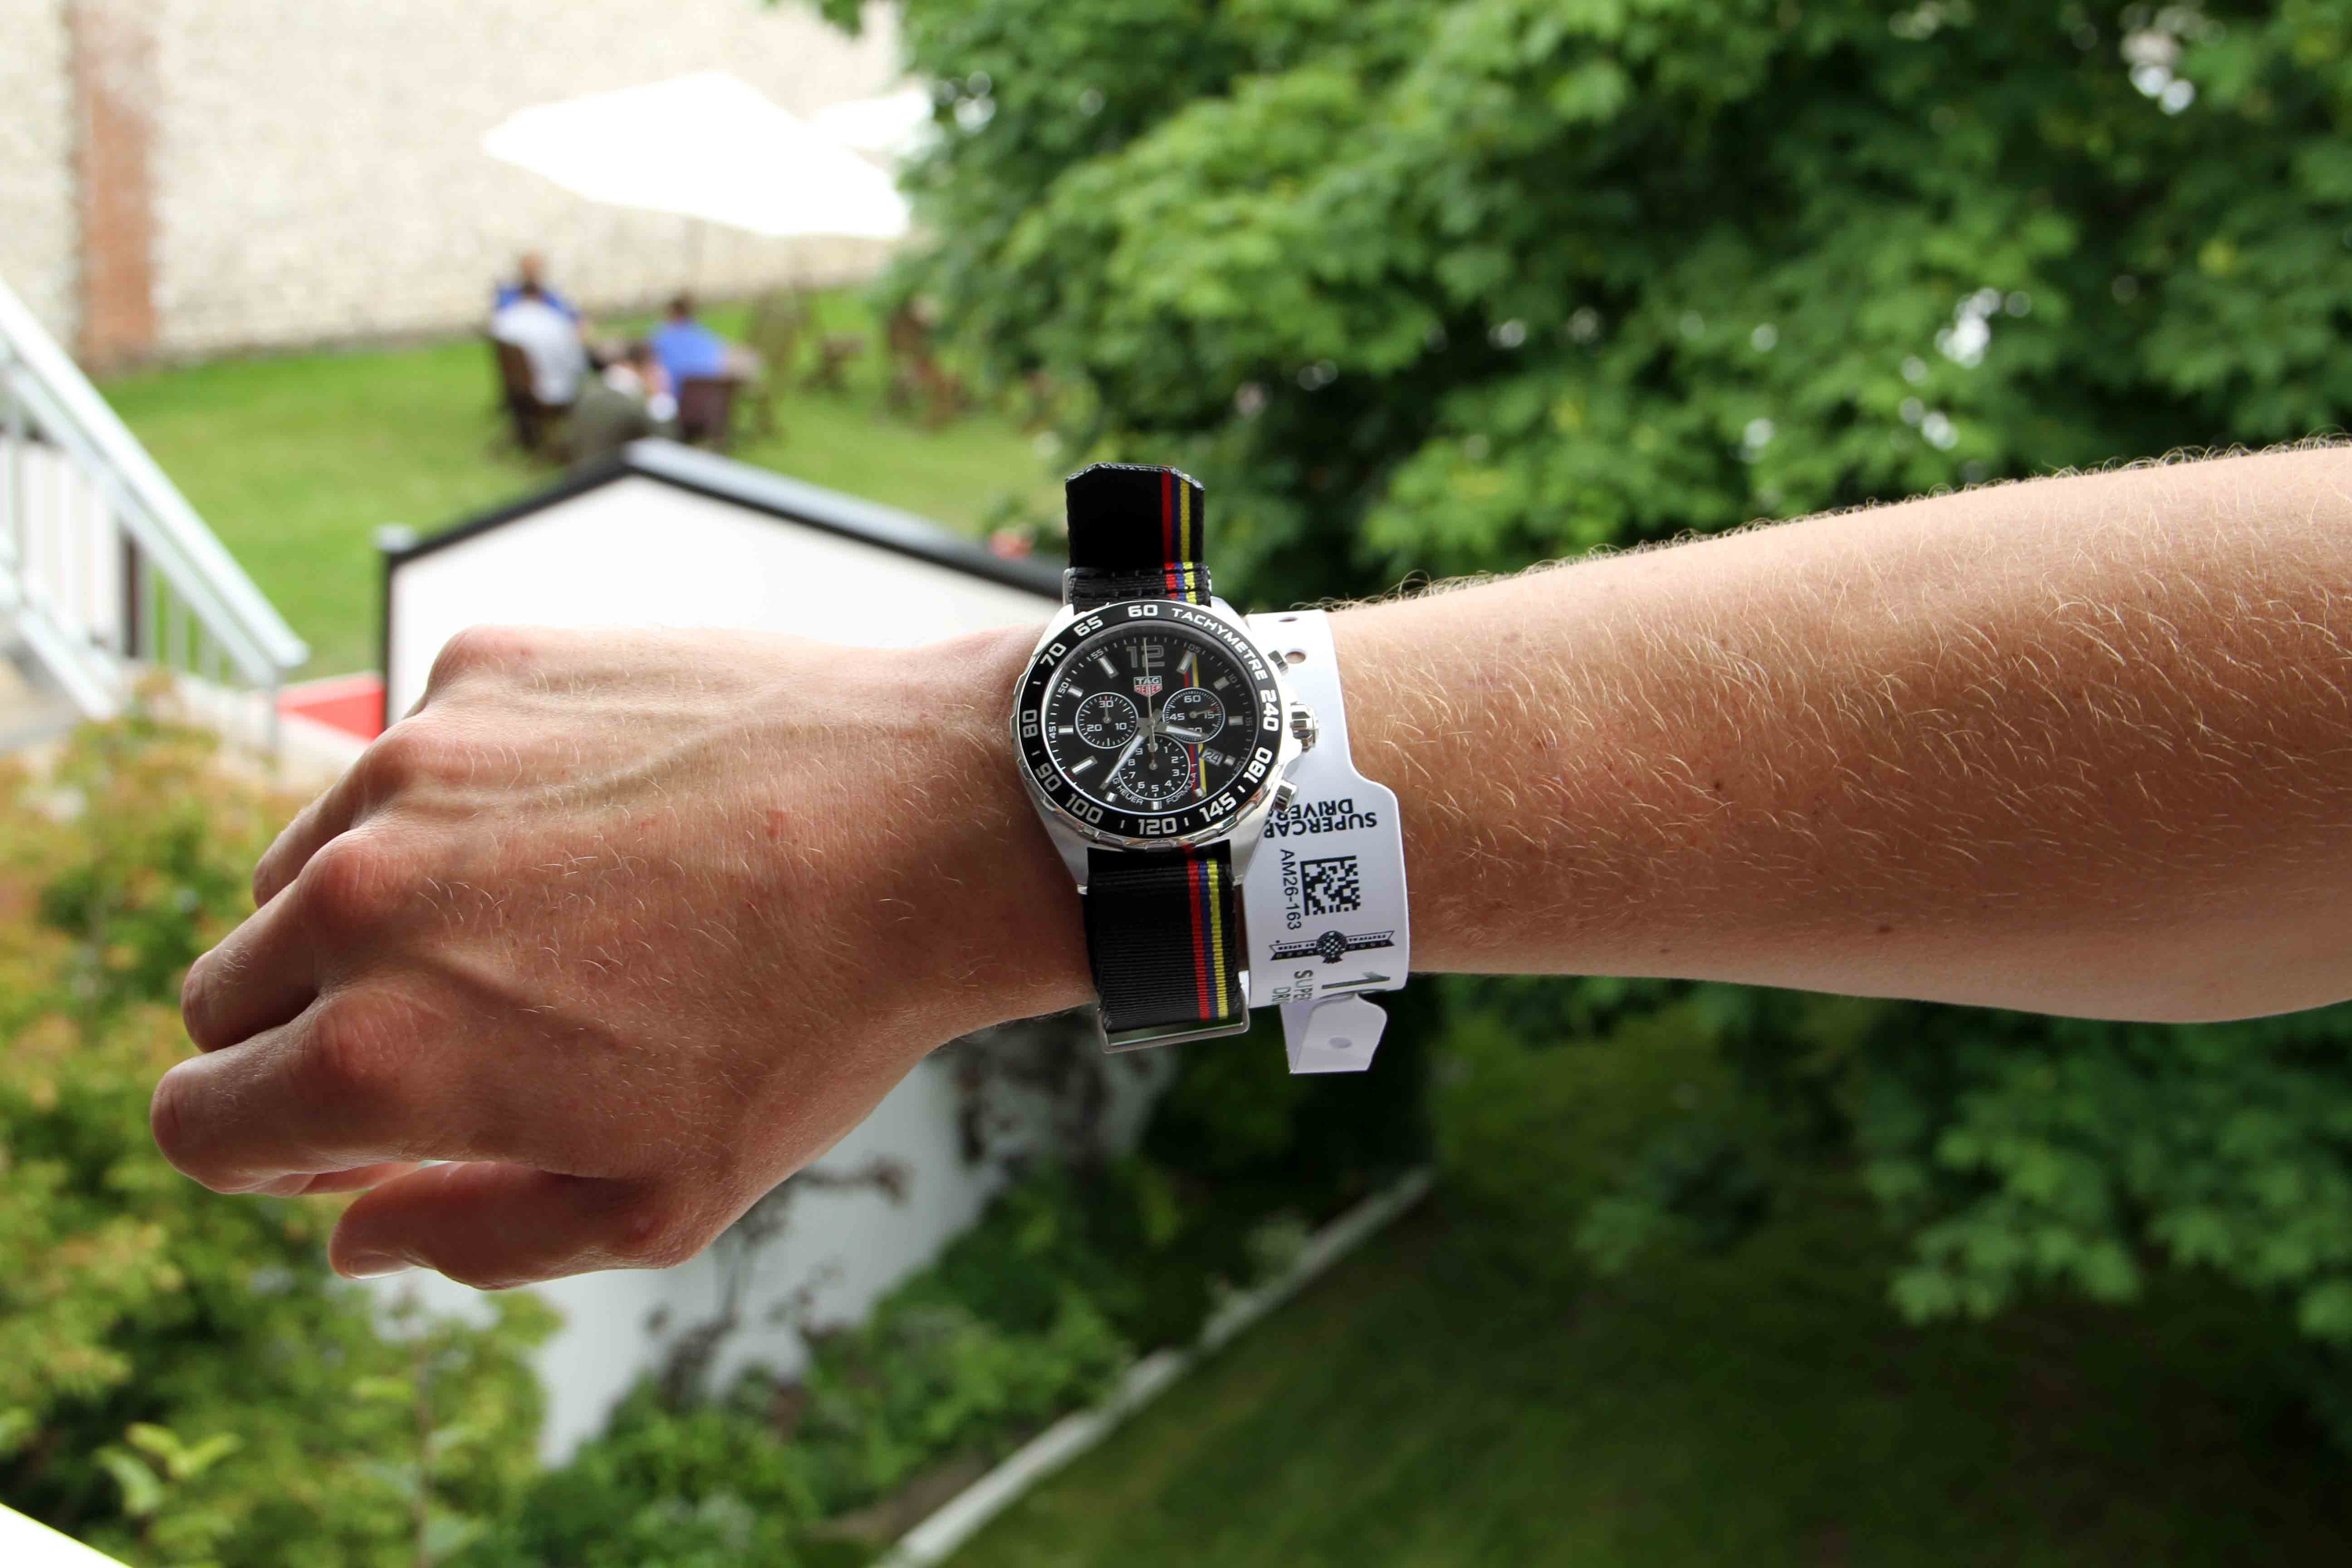 Steve King's Blog: Watch Spotting: At The Goodwood ...